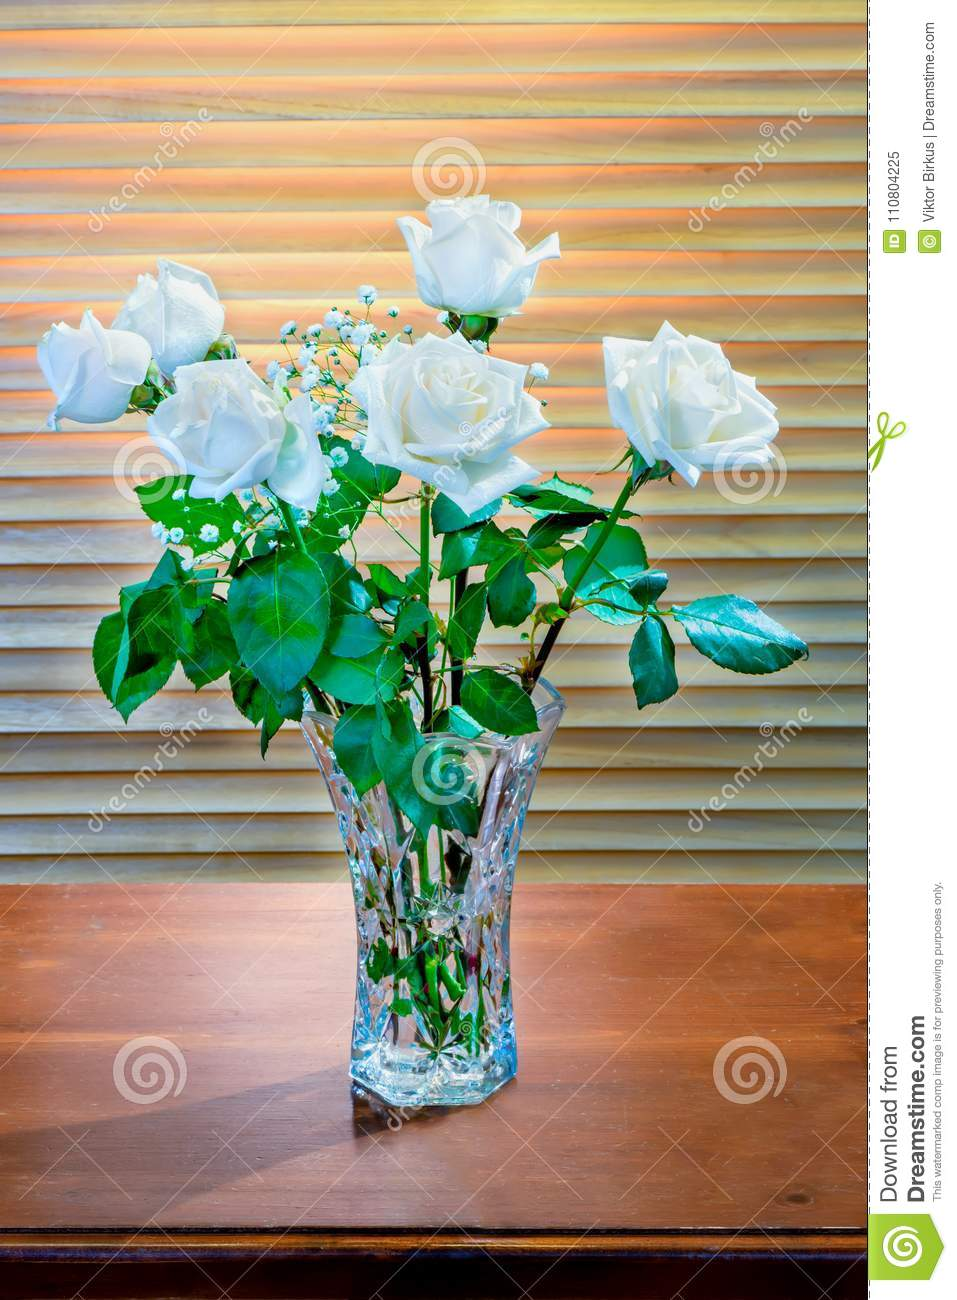 Bouquet Of White Roses With Green Leaves And Small White Flowers